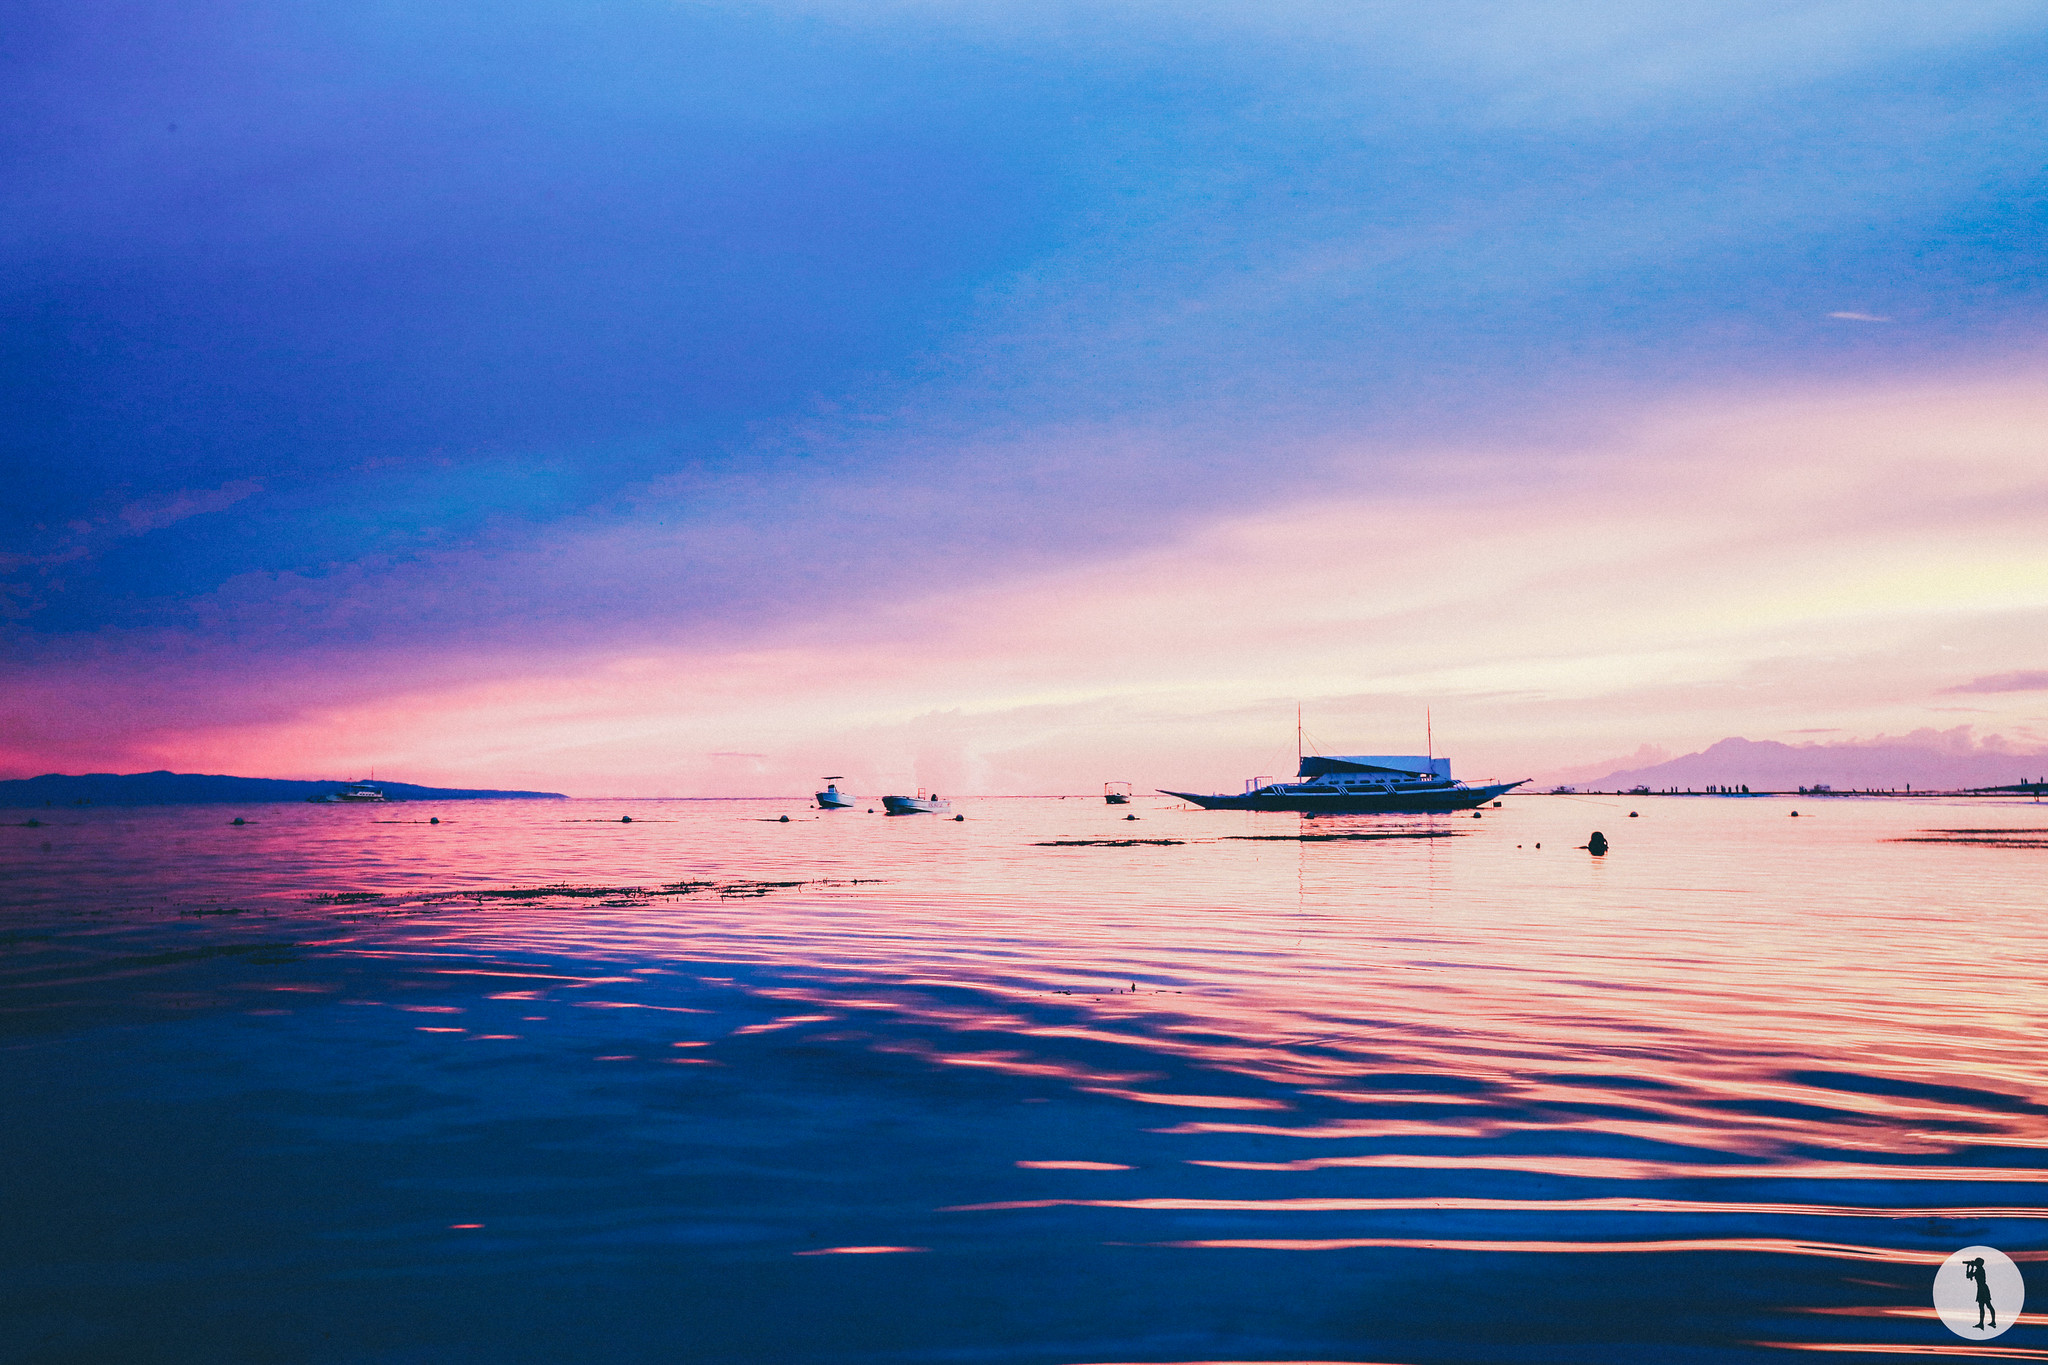 Travel to the Philippines - Panglao Island